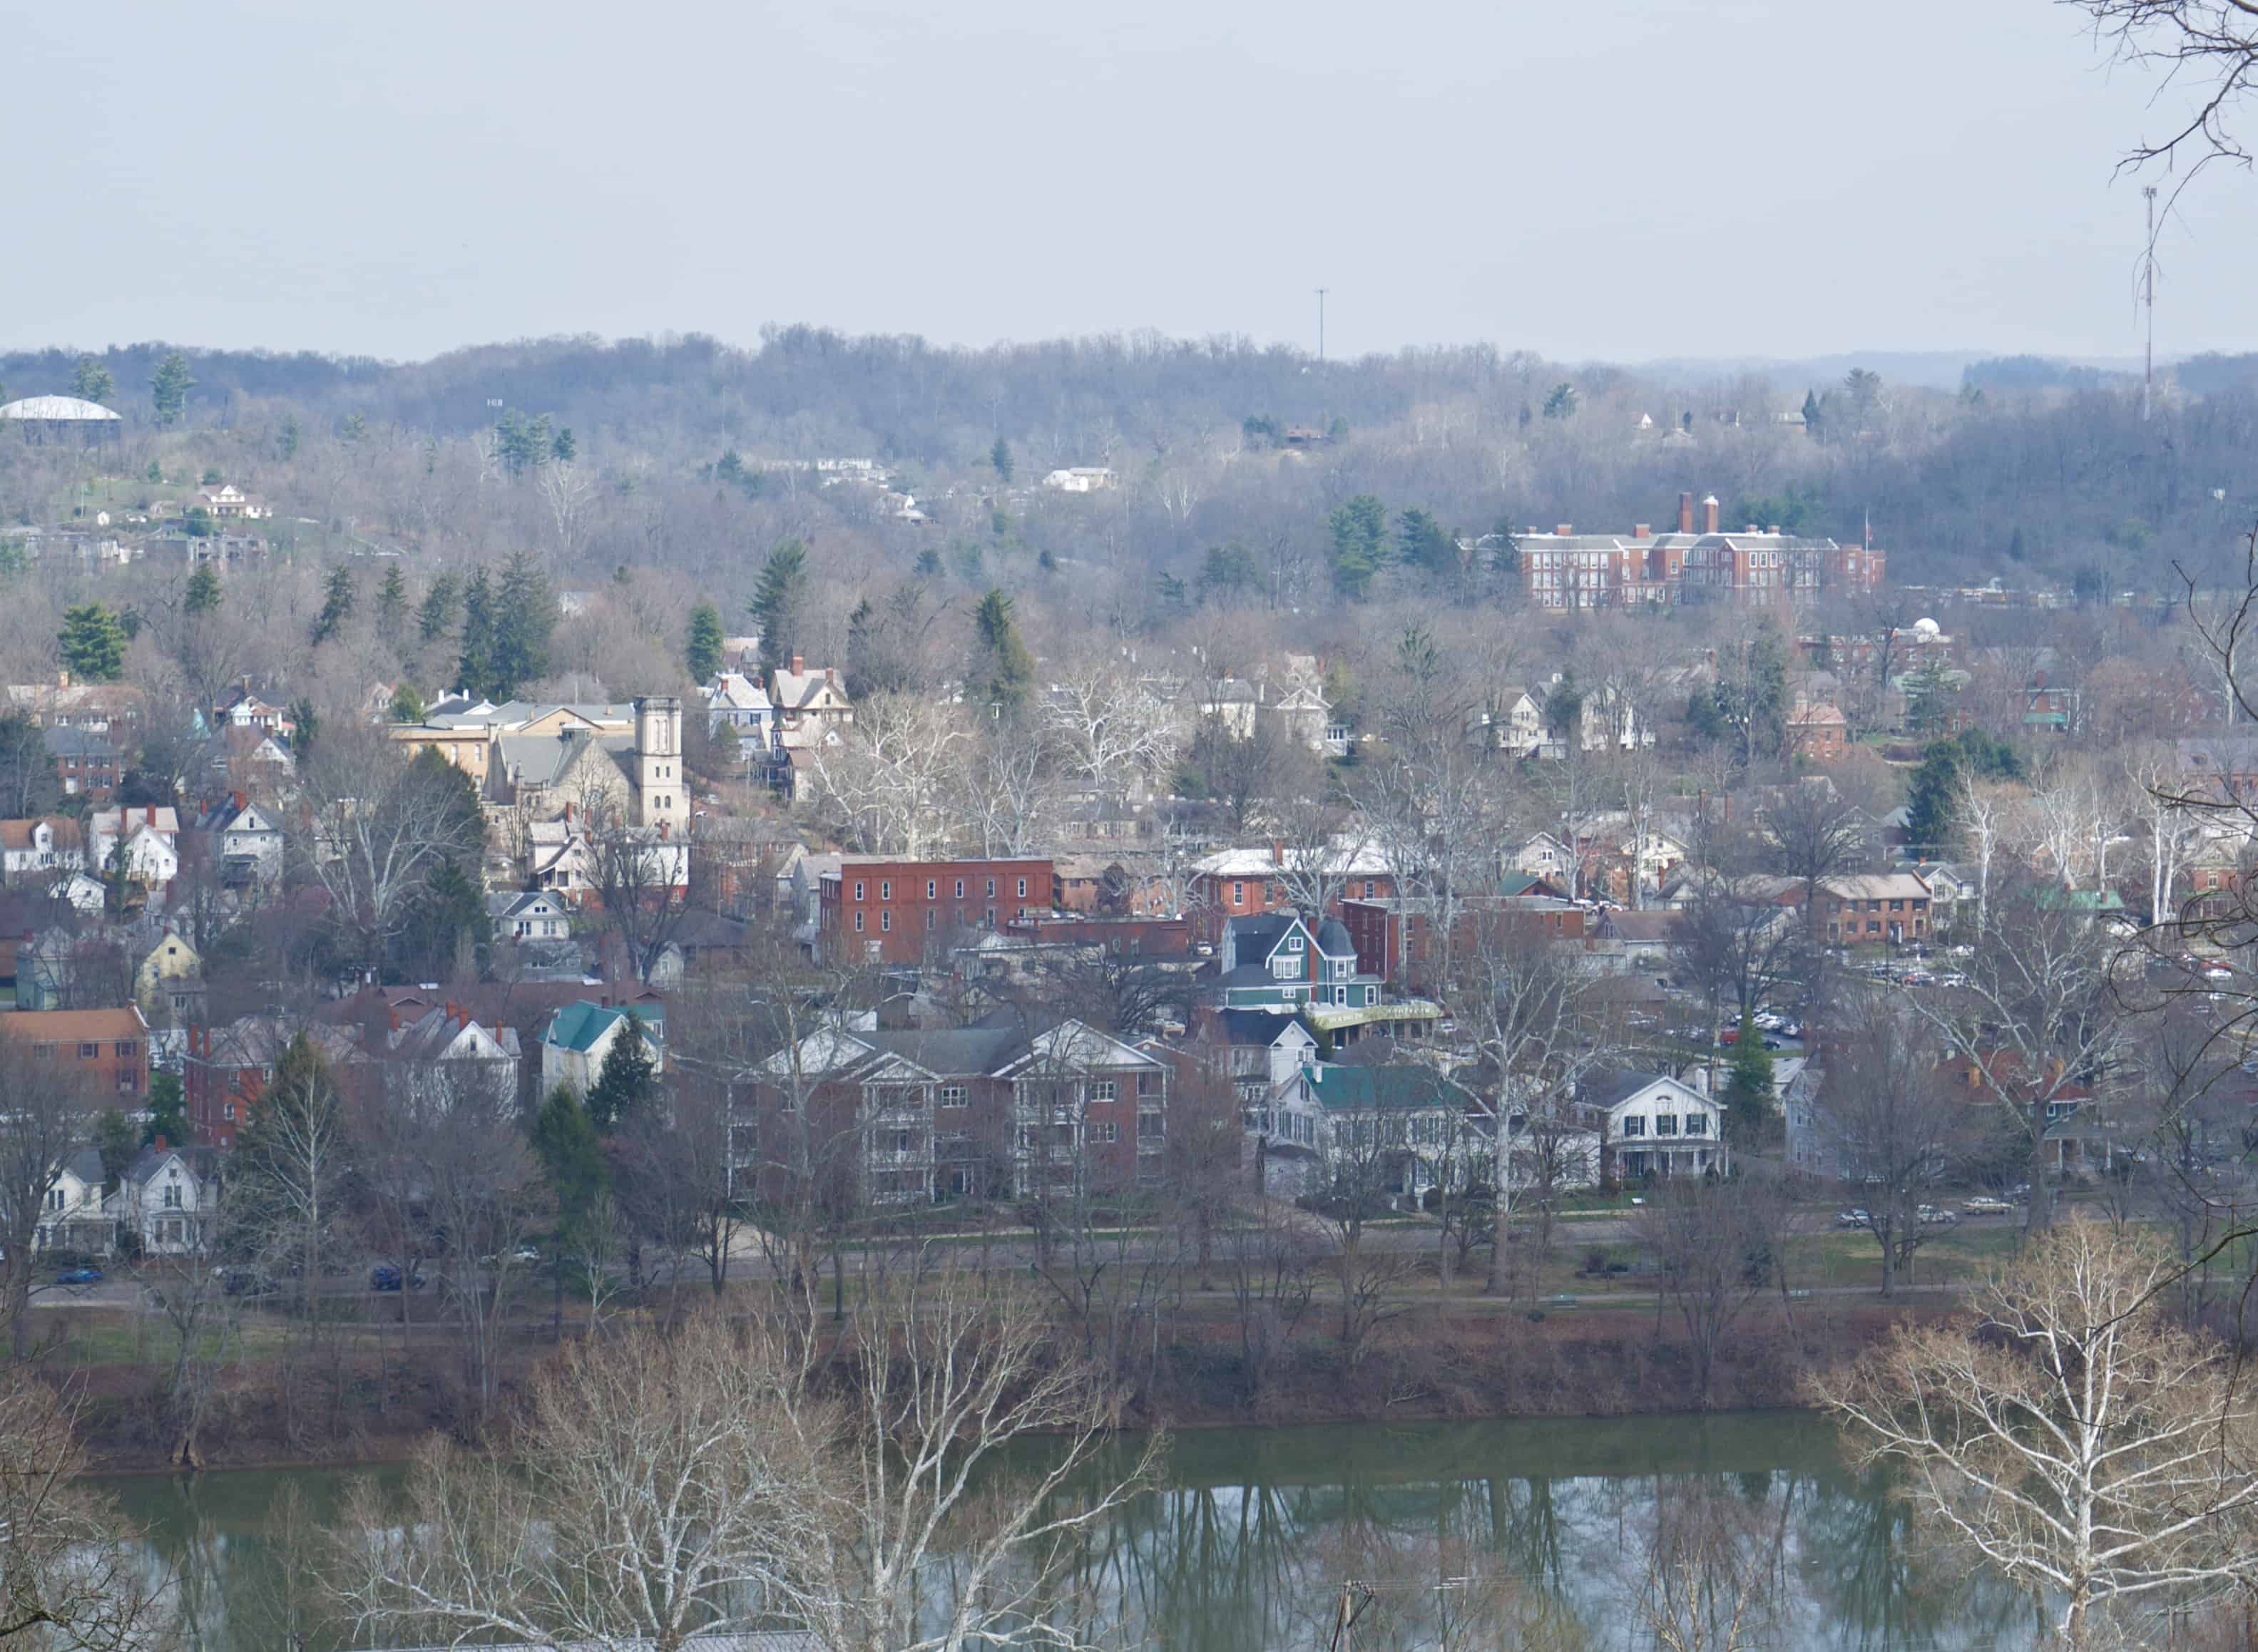 Benson Ford House Photo Tour Two Places To Stay In Marietta Ohio You Cant Go Wrong